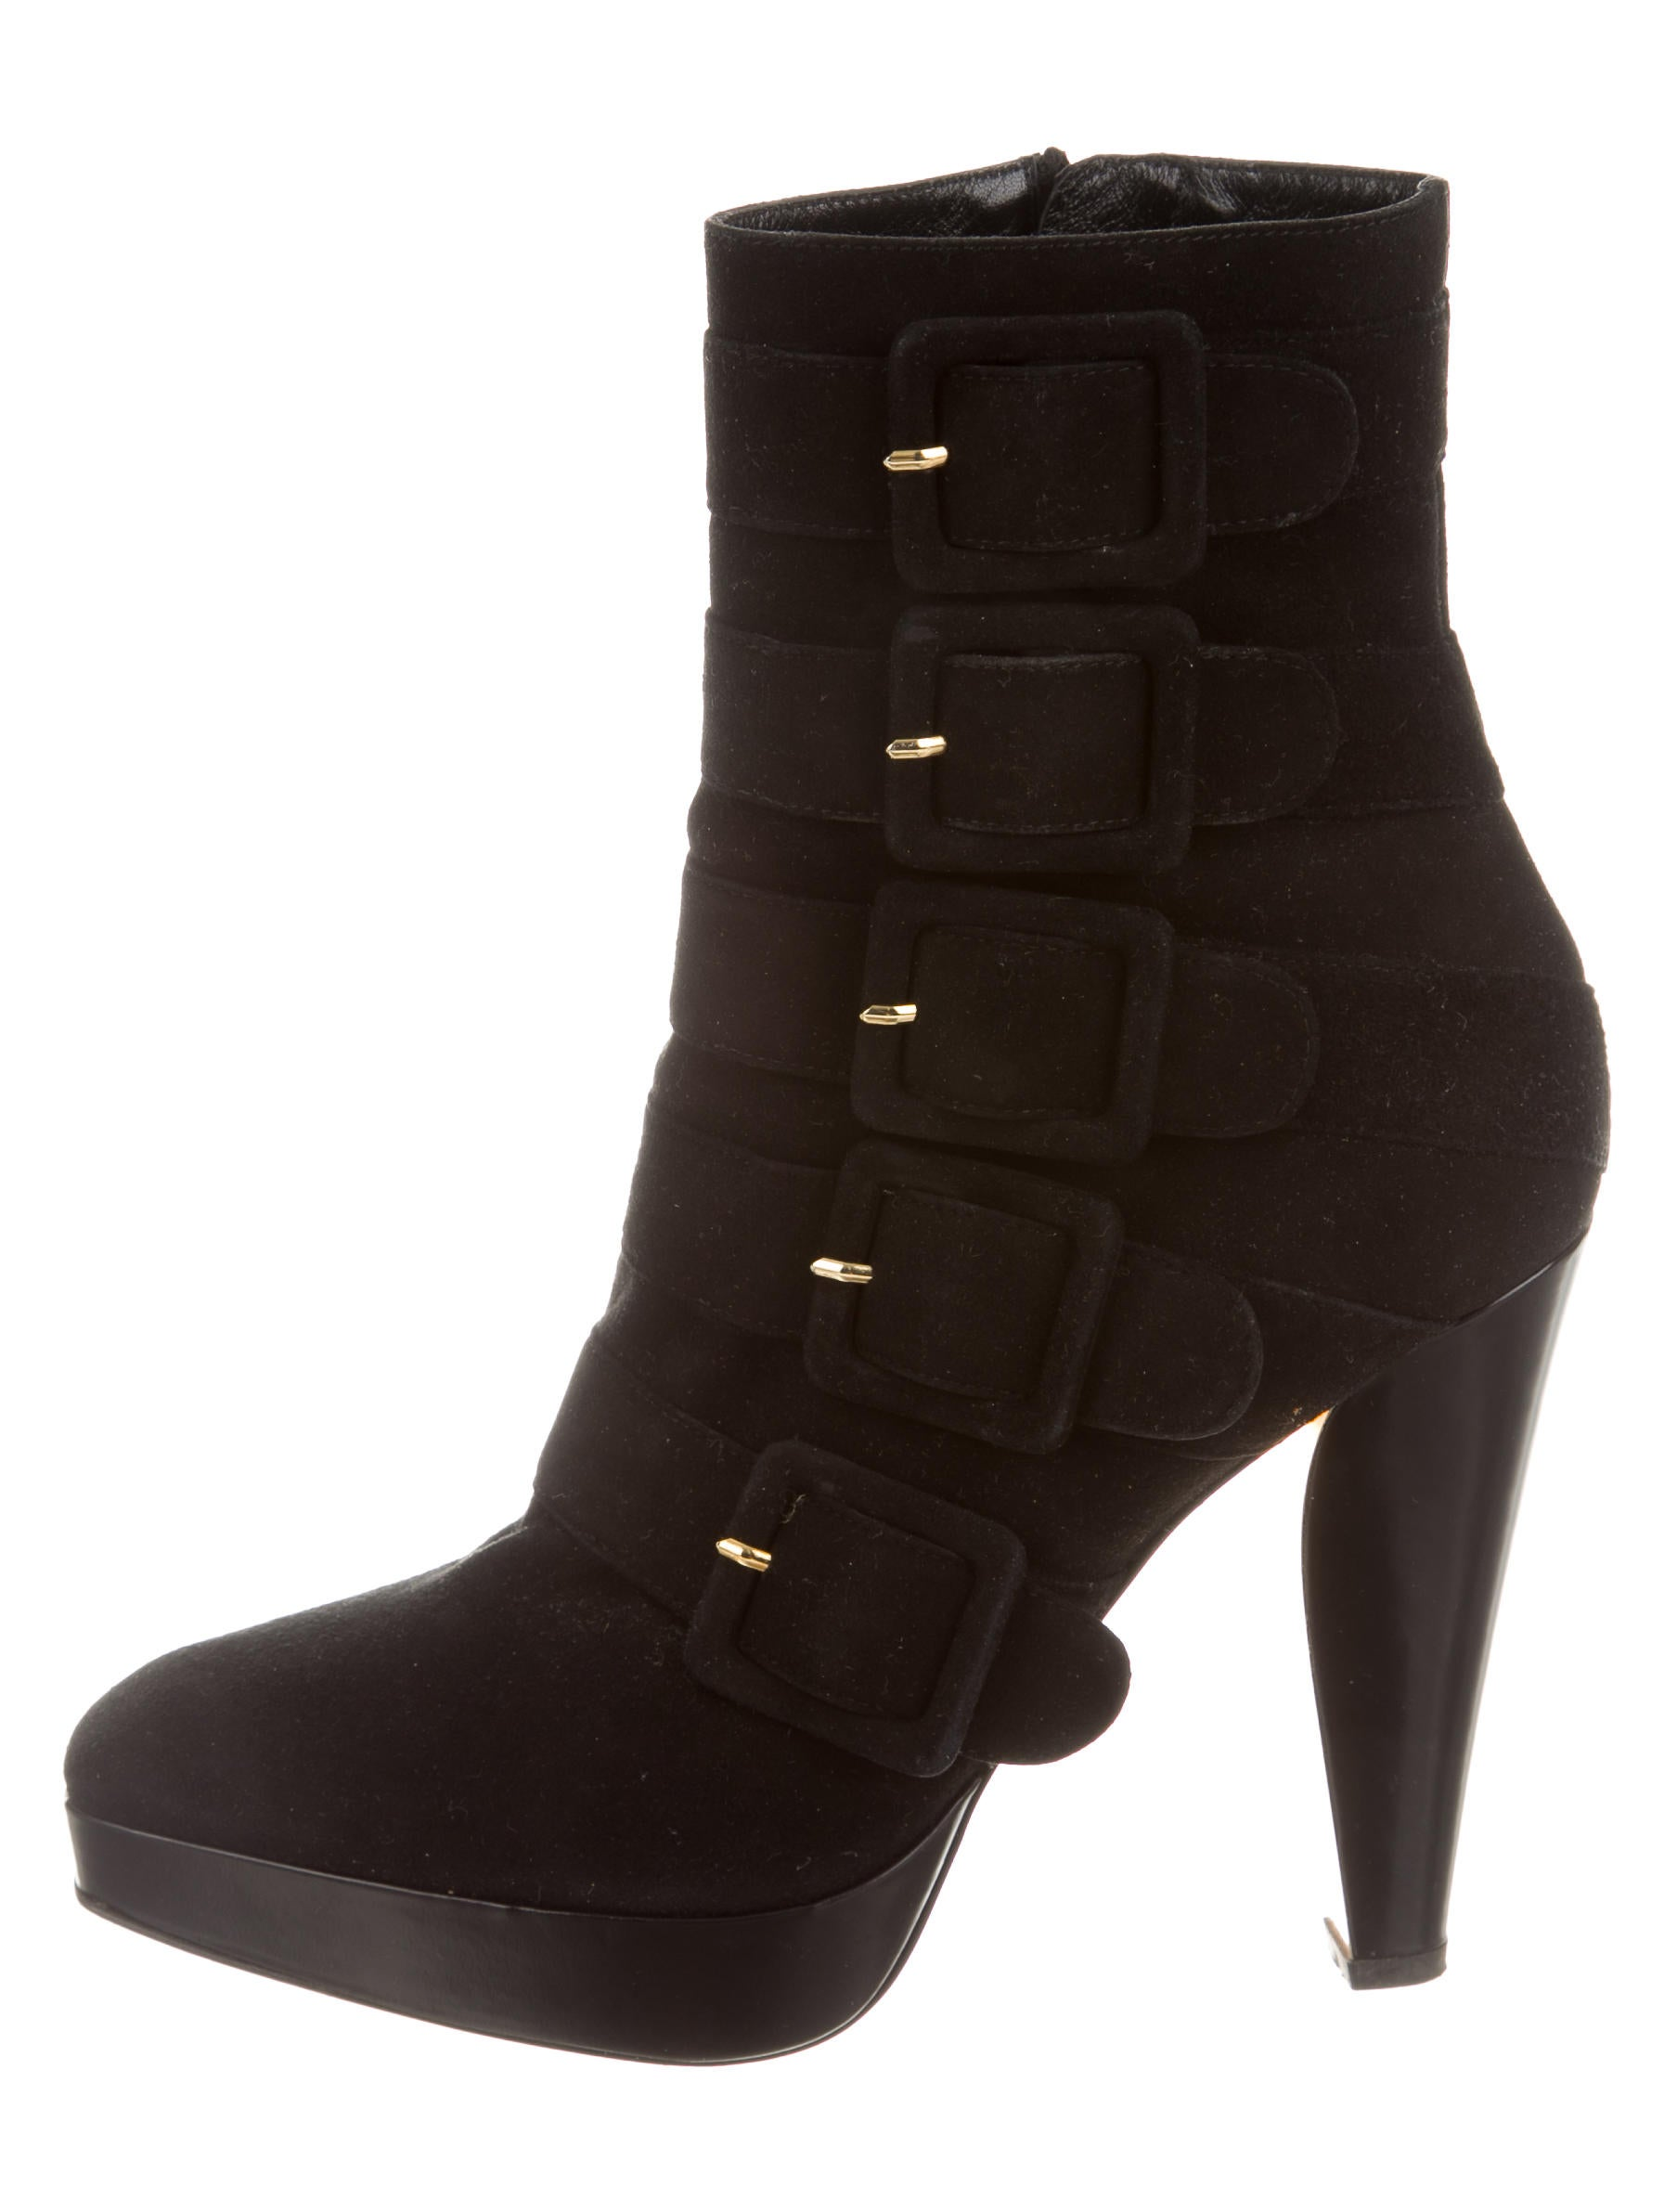 barbara bui suede platform ankle boots shoes bab22006